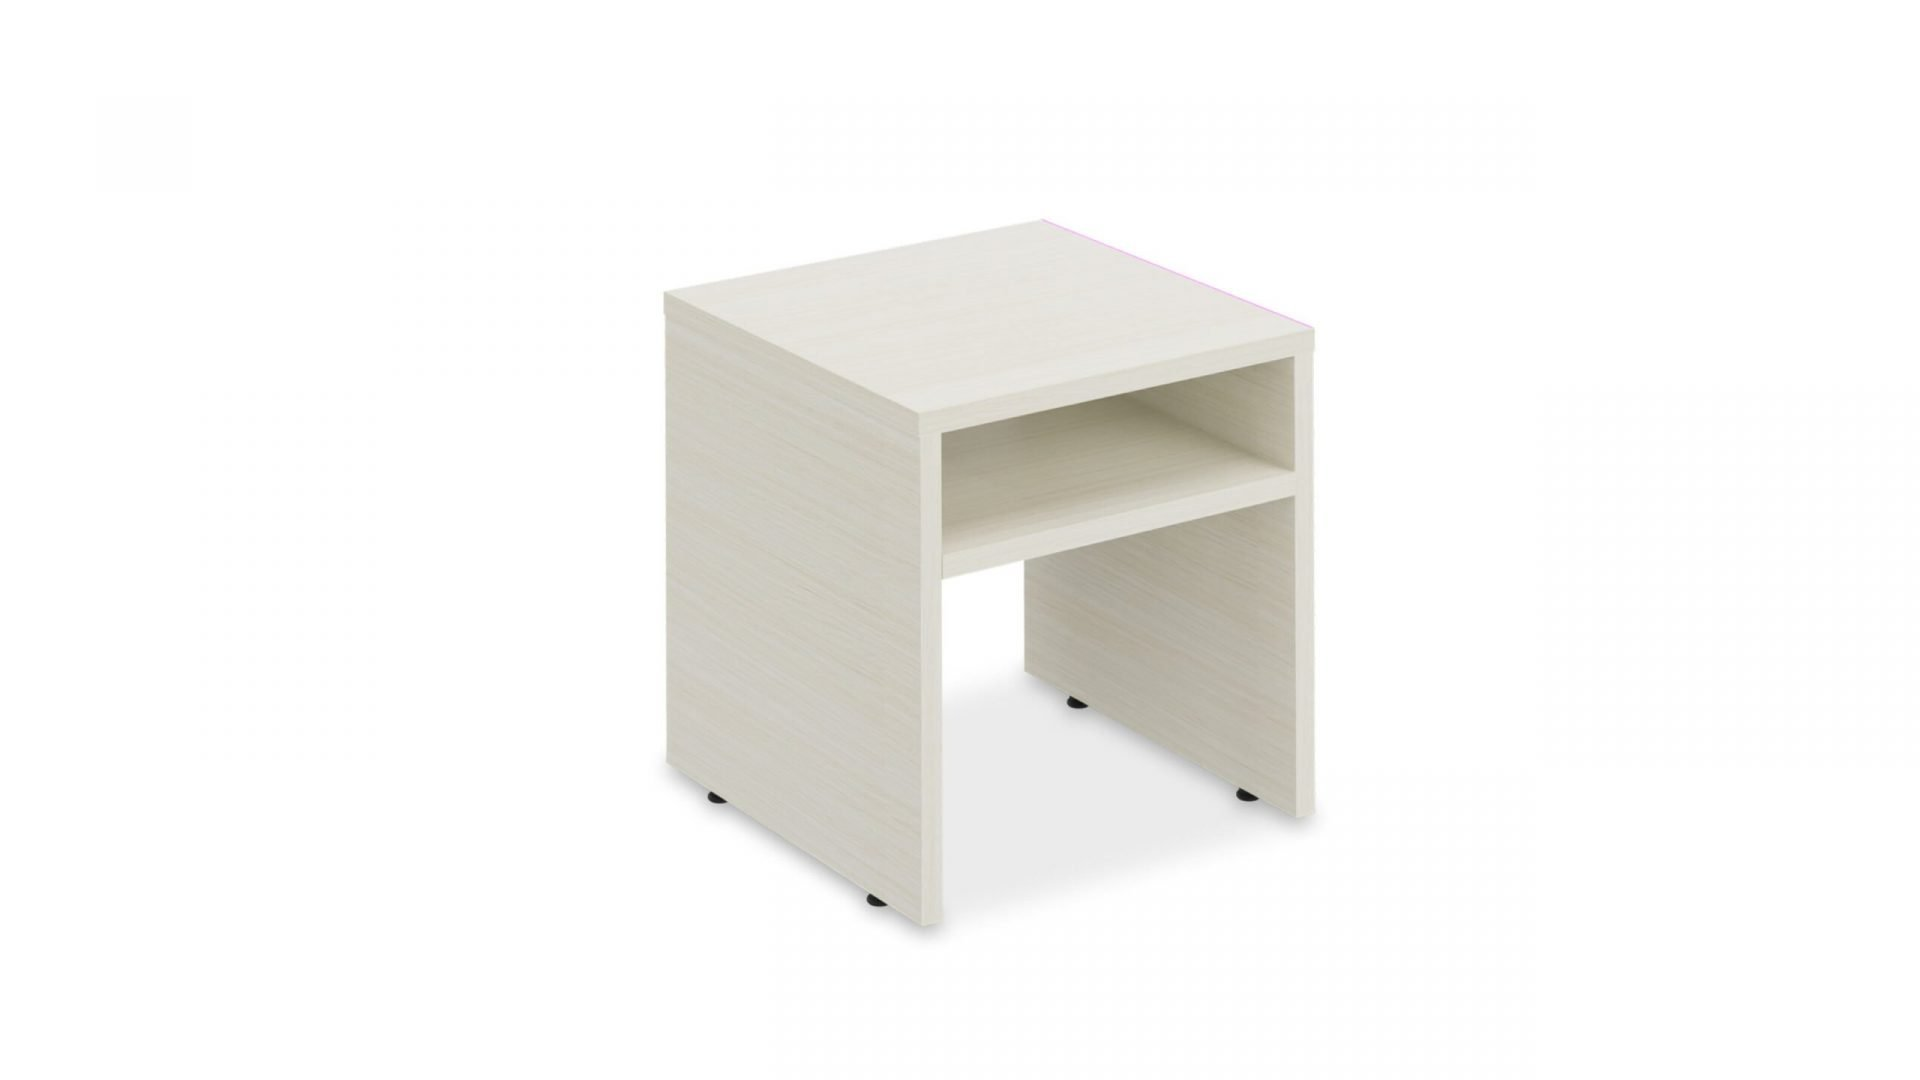 Square Coffee table 1654 on a white background